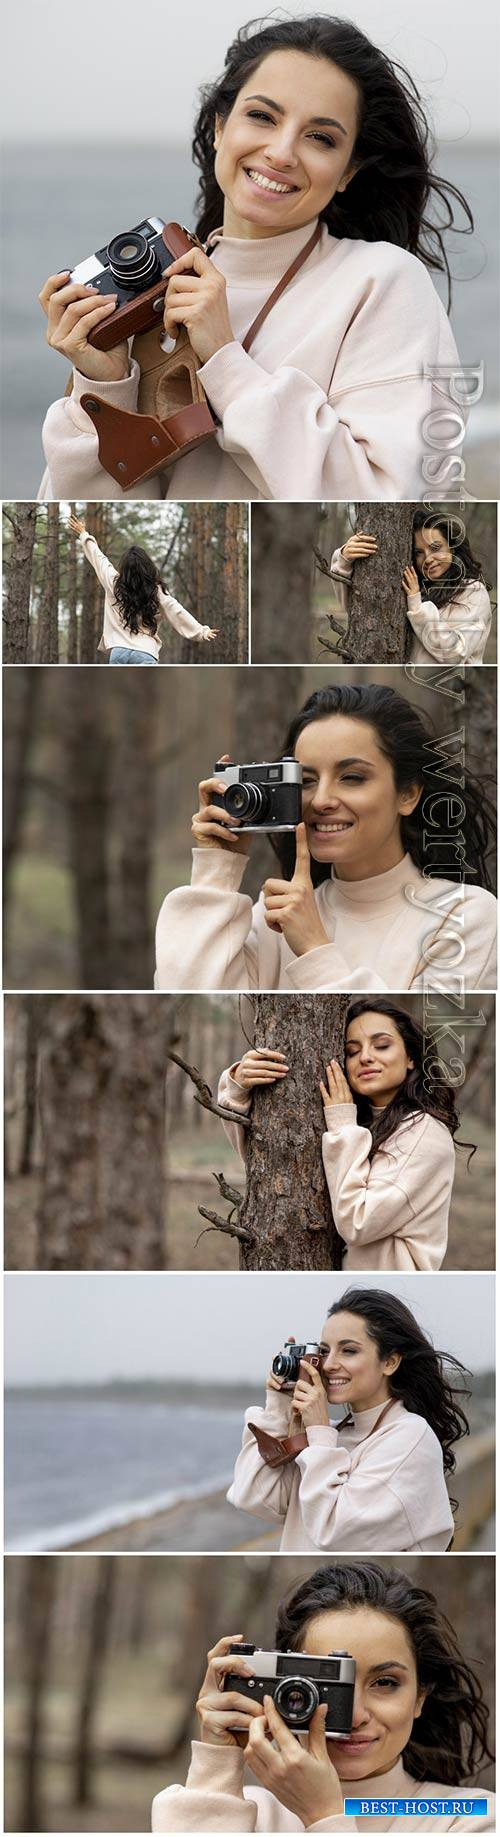 Smiley woman with camera